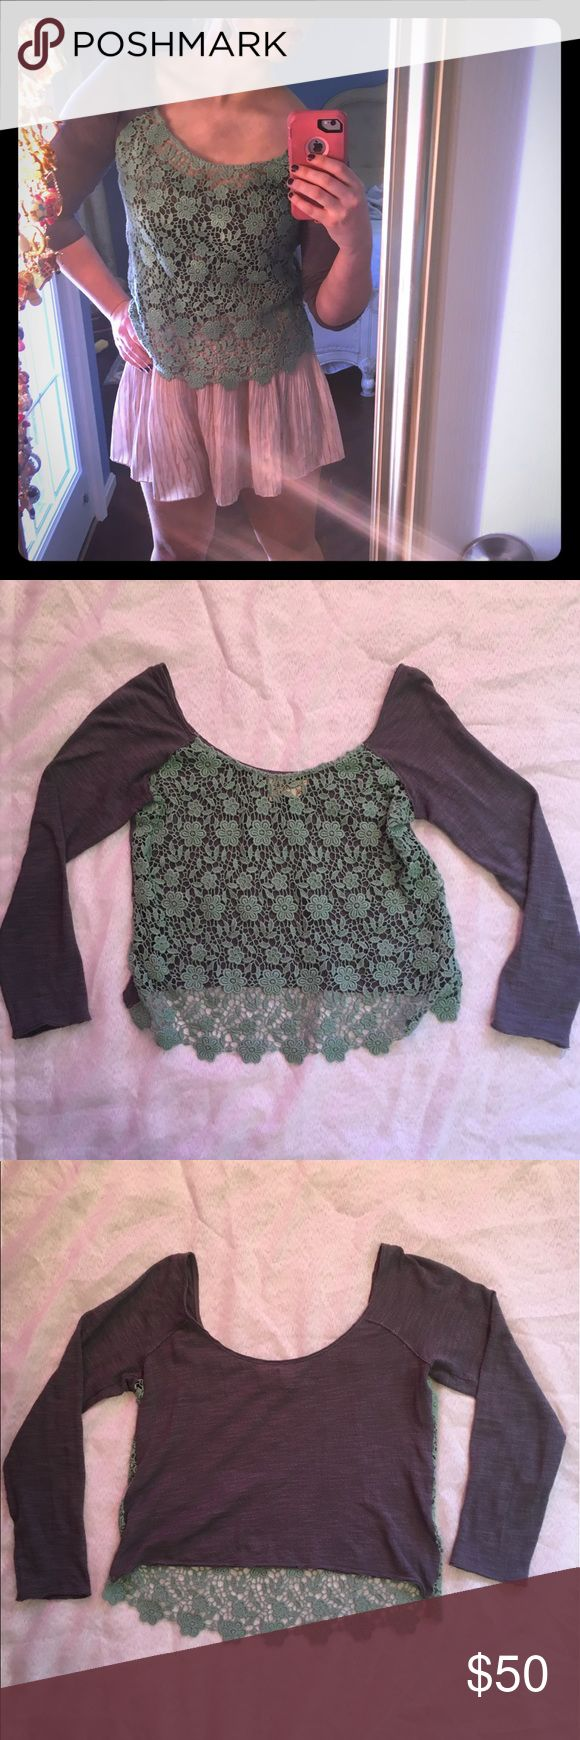 Free People Front Crochet Top Beautiful gray shirt with mint green crocheting on the front and 3/4 length sleeve.  This is a gently used NWOT Free People shirt that is very flattering on all with no visible damage that I can see.  The  crocheting hides a multitude of sins.  Lol  As you can see the crochet layer dips below the light weight shirt in the front.  Great for all seasons, but especially good for spring and fall. Free People Tops Blouses